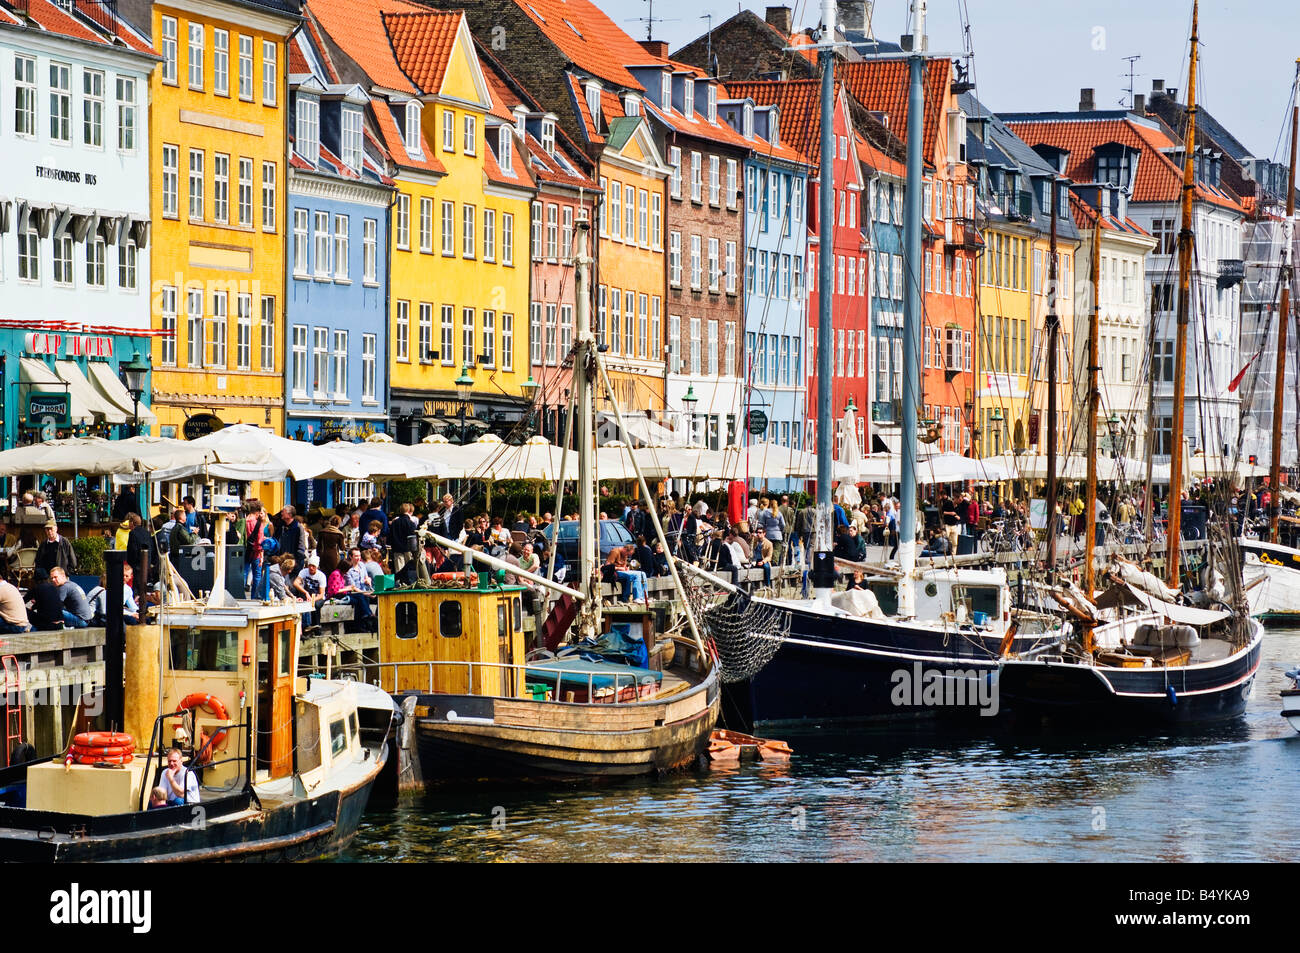 Nyhavn København Copenhagen is lined with colourful warehouses and merchants dwellings - Stock Image